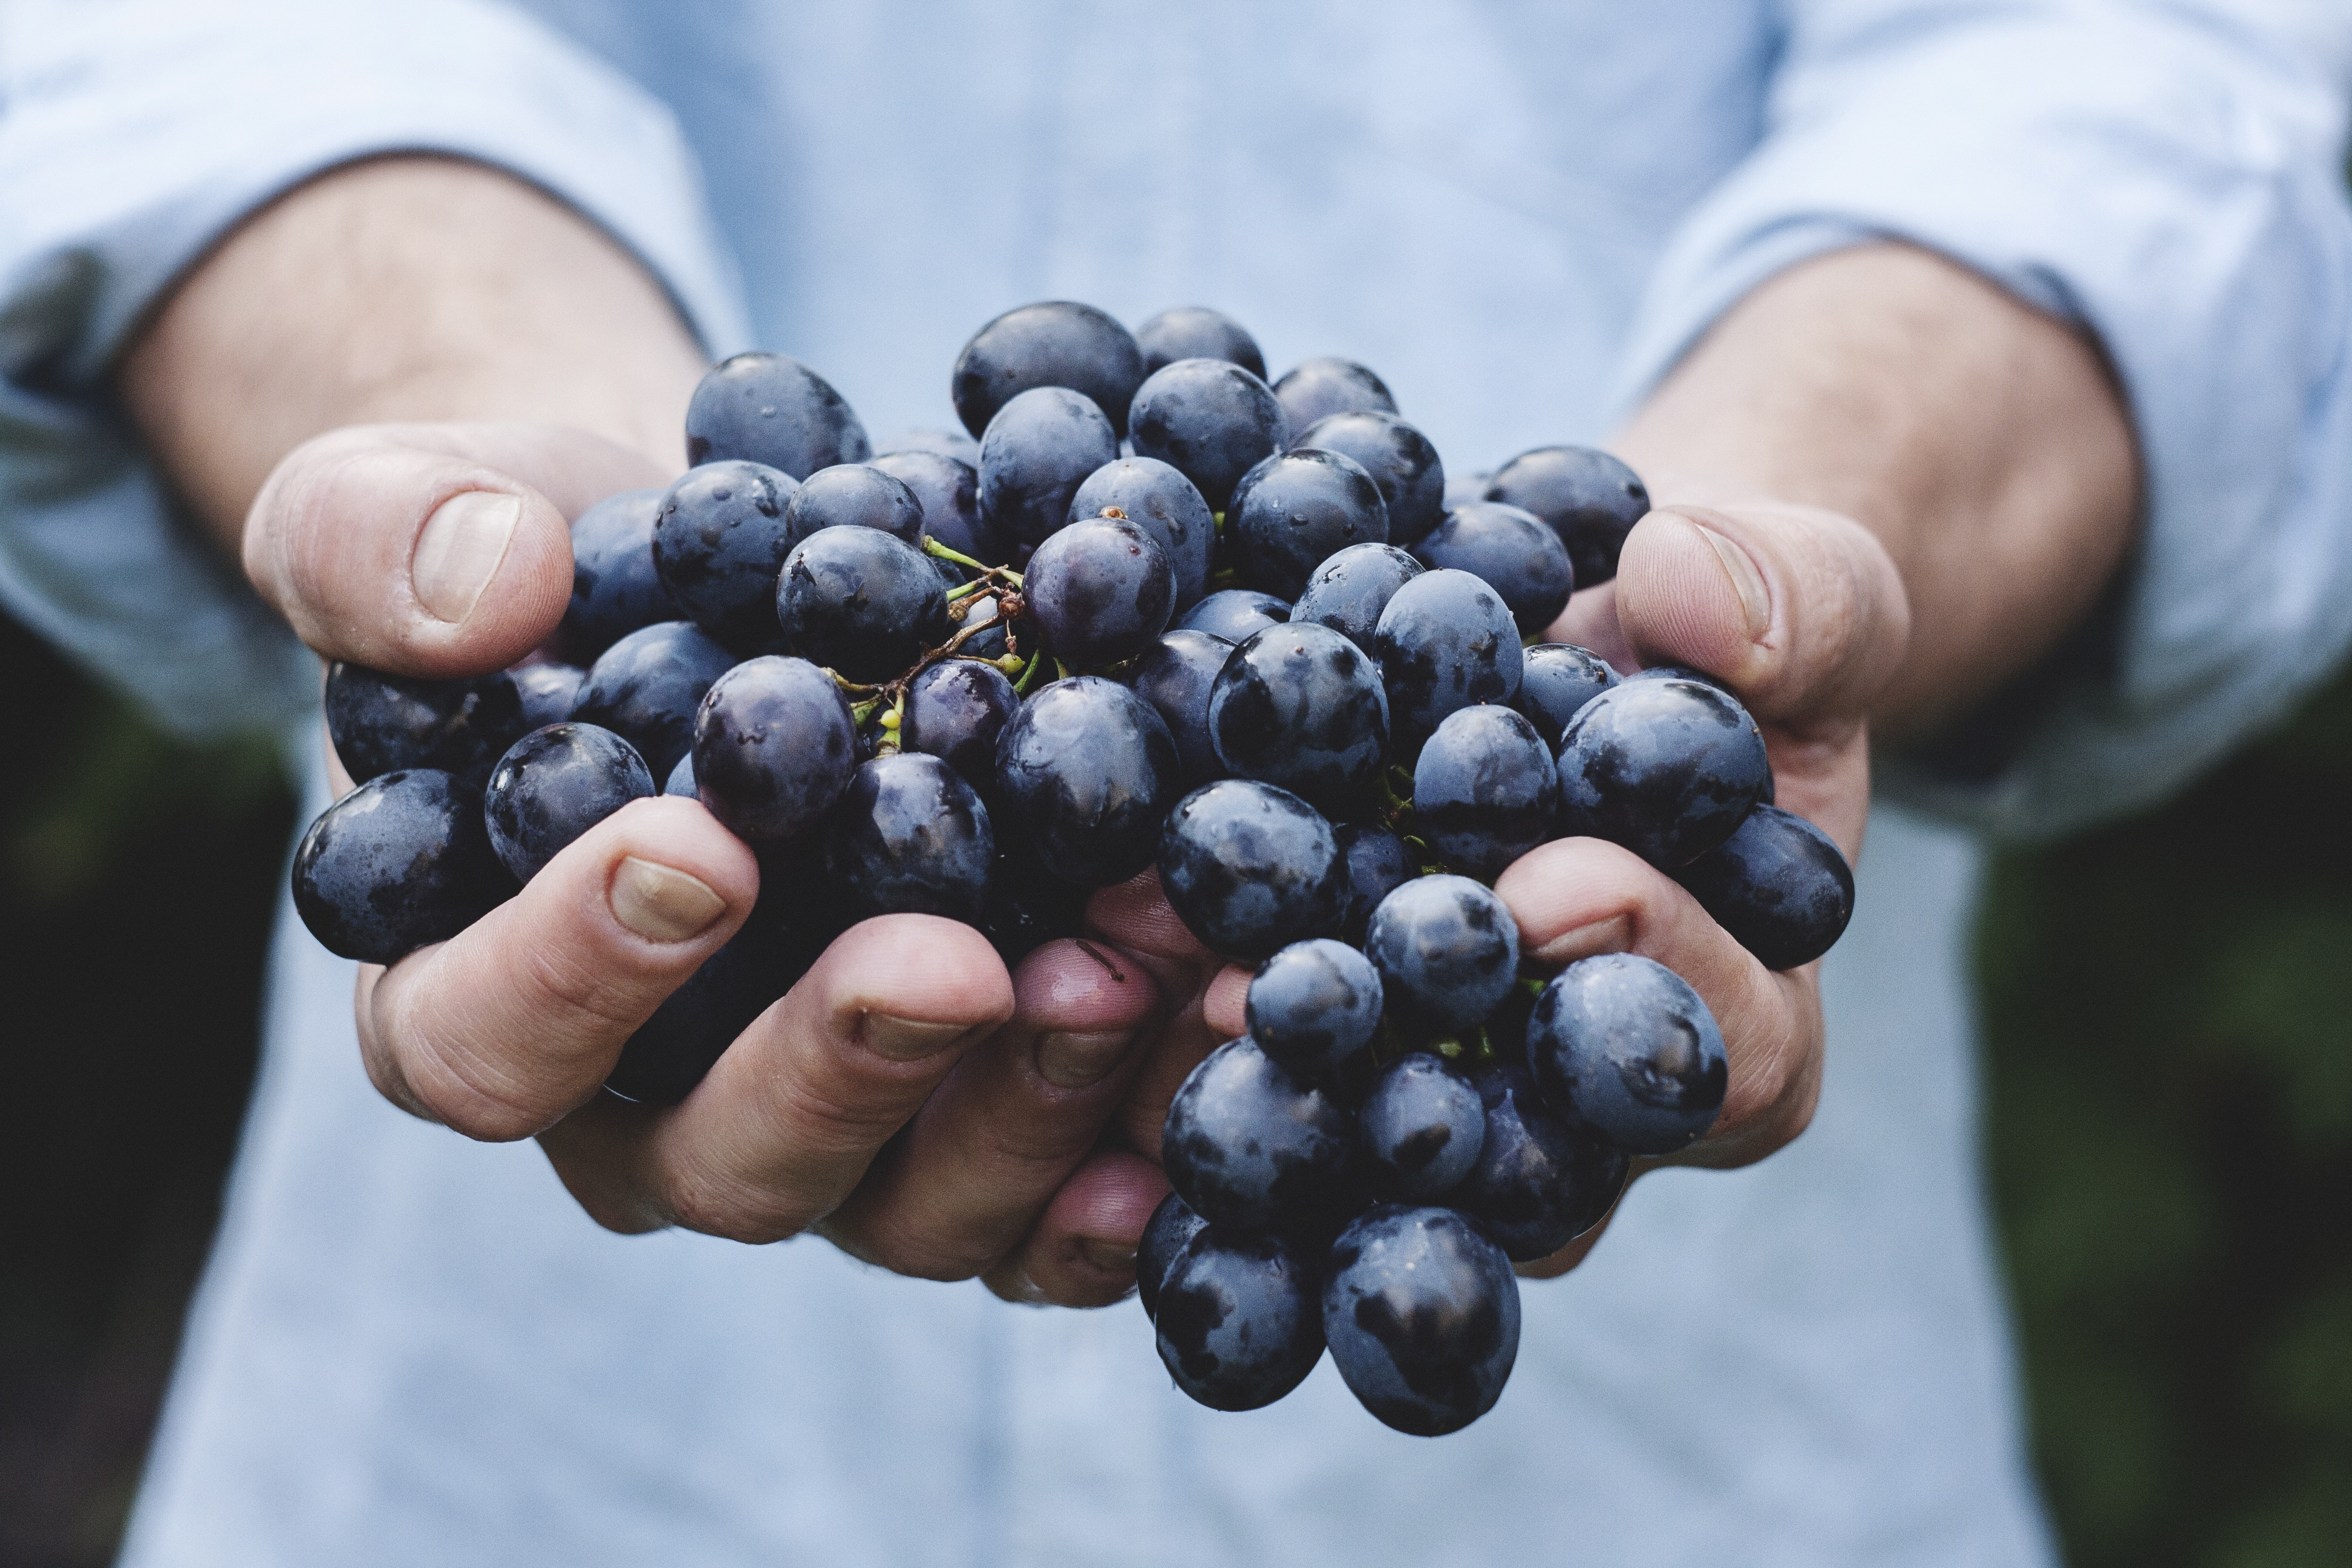 Localize-Stock-Grapes-Hands.jpg